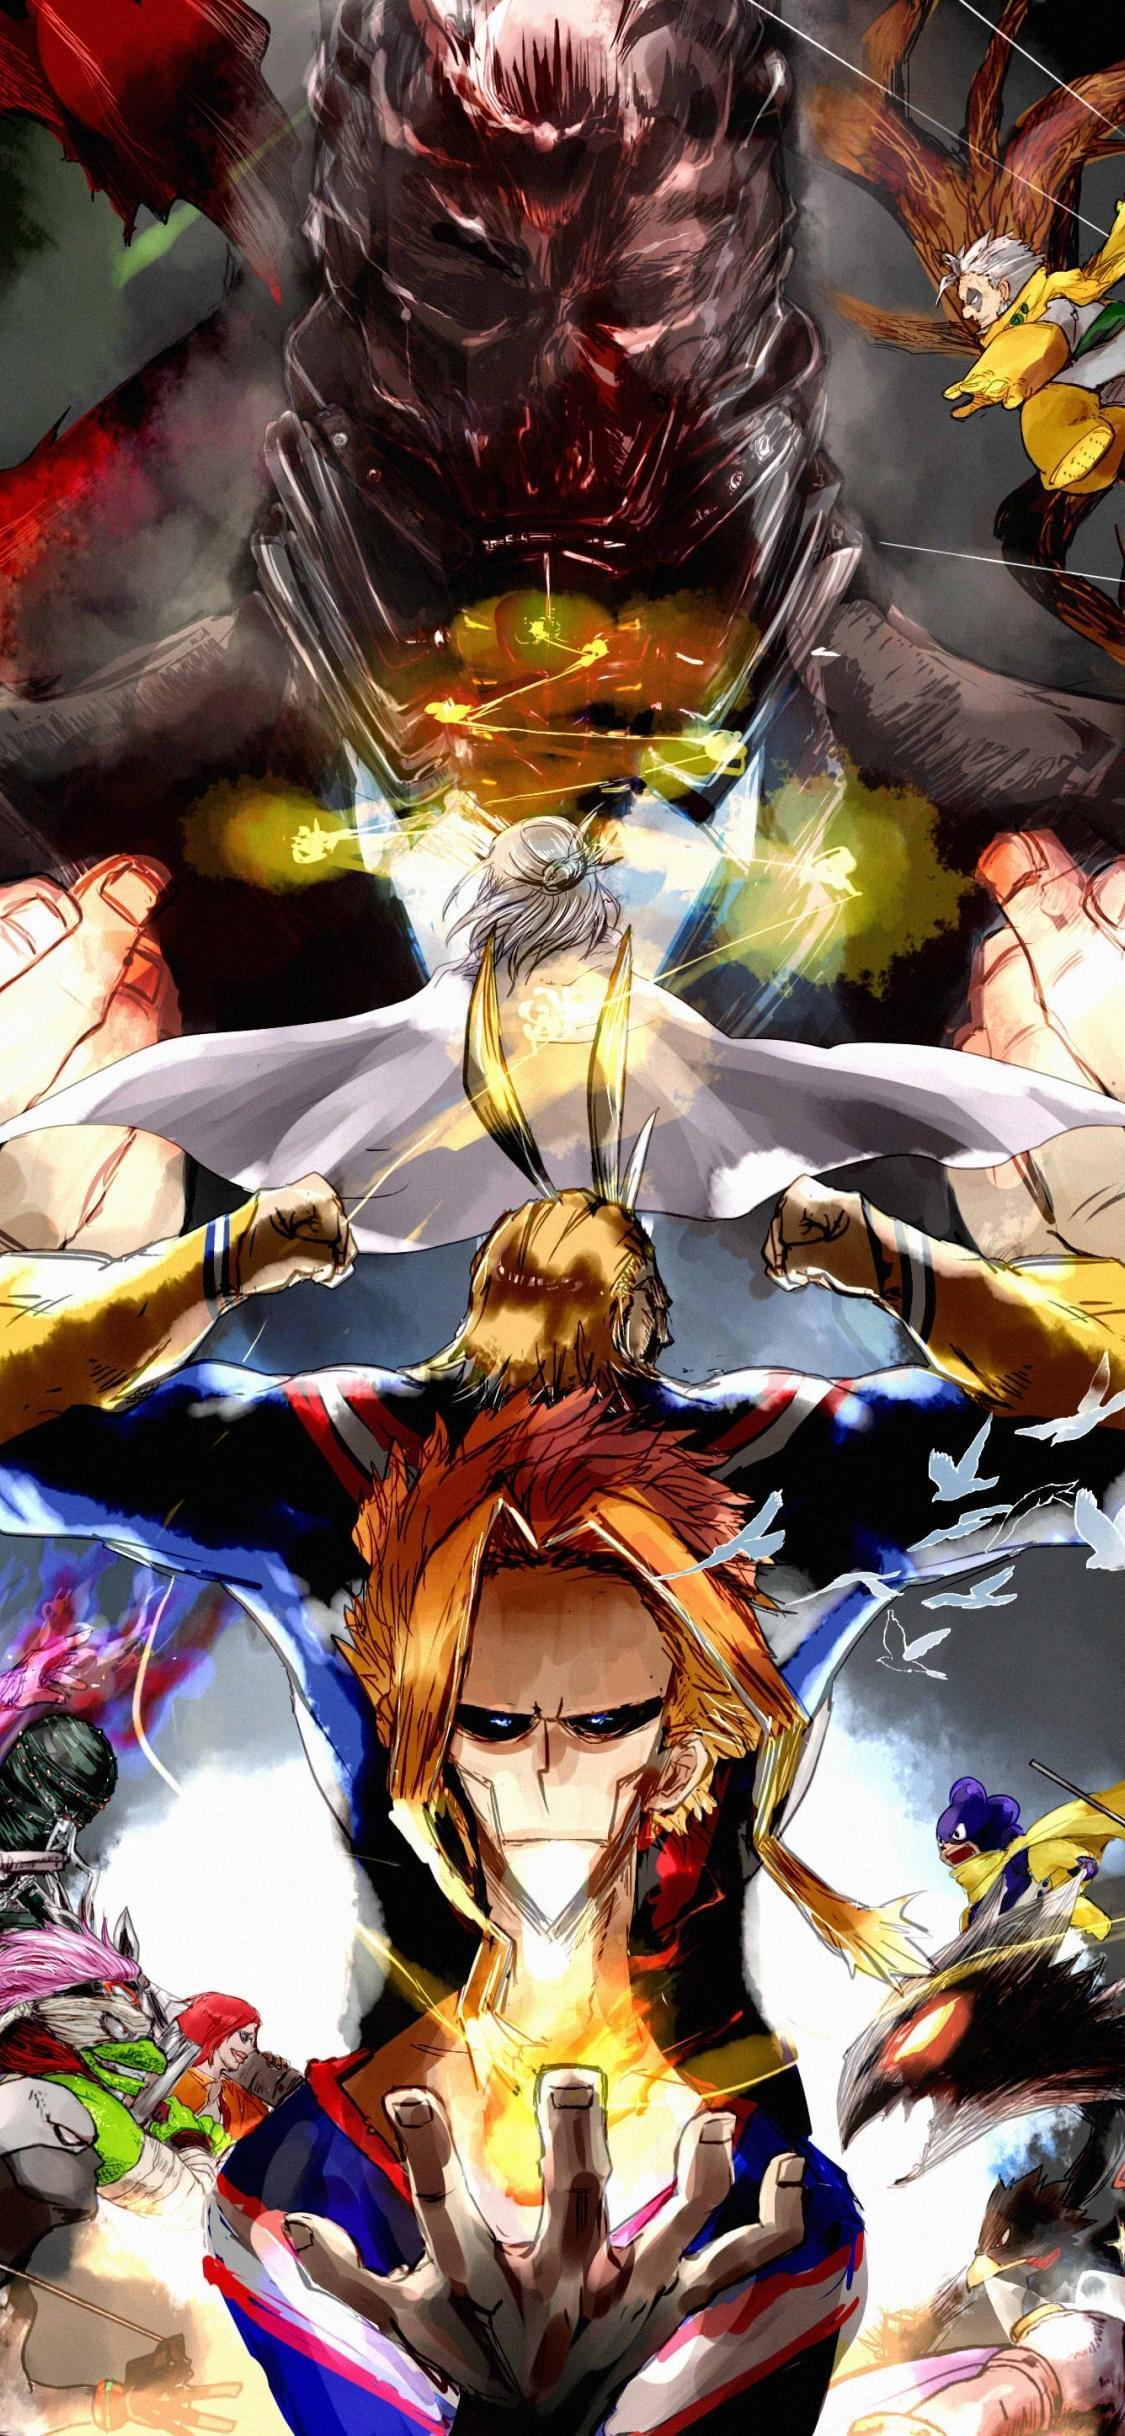 Download wallpapers from anime my hero academia for monitor with resolution 1920x1080 and tags on page: My Hero Academia Android Wallpapers - Wallpaper Cave